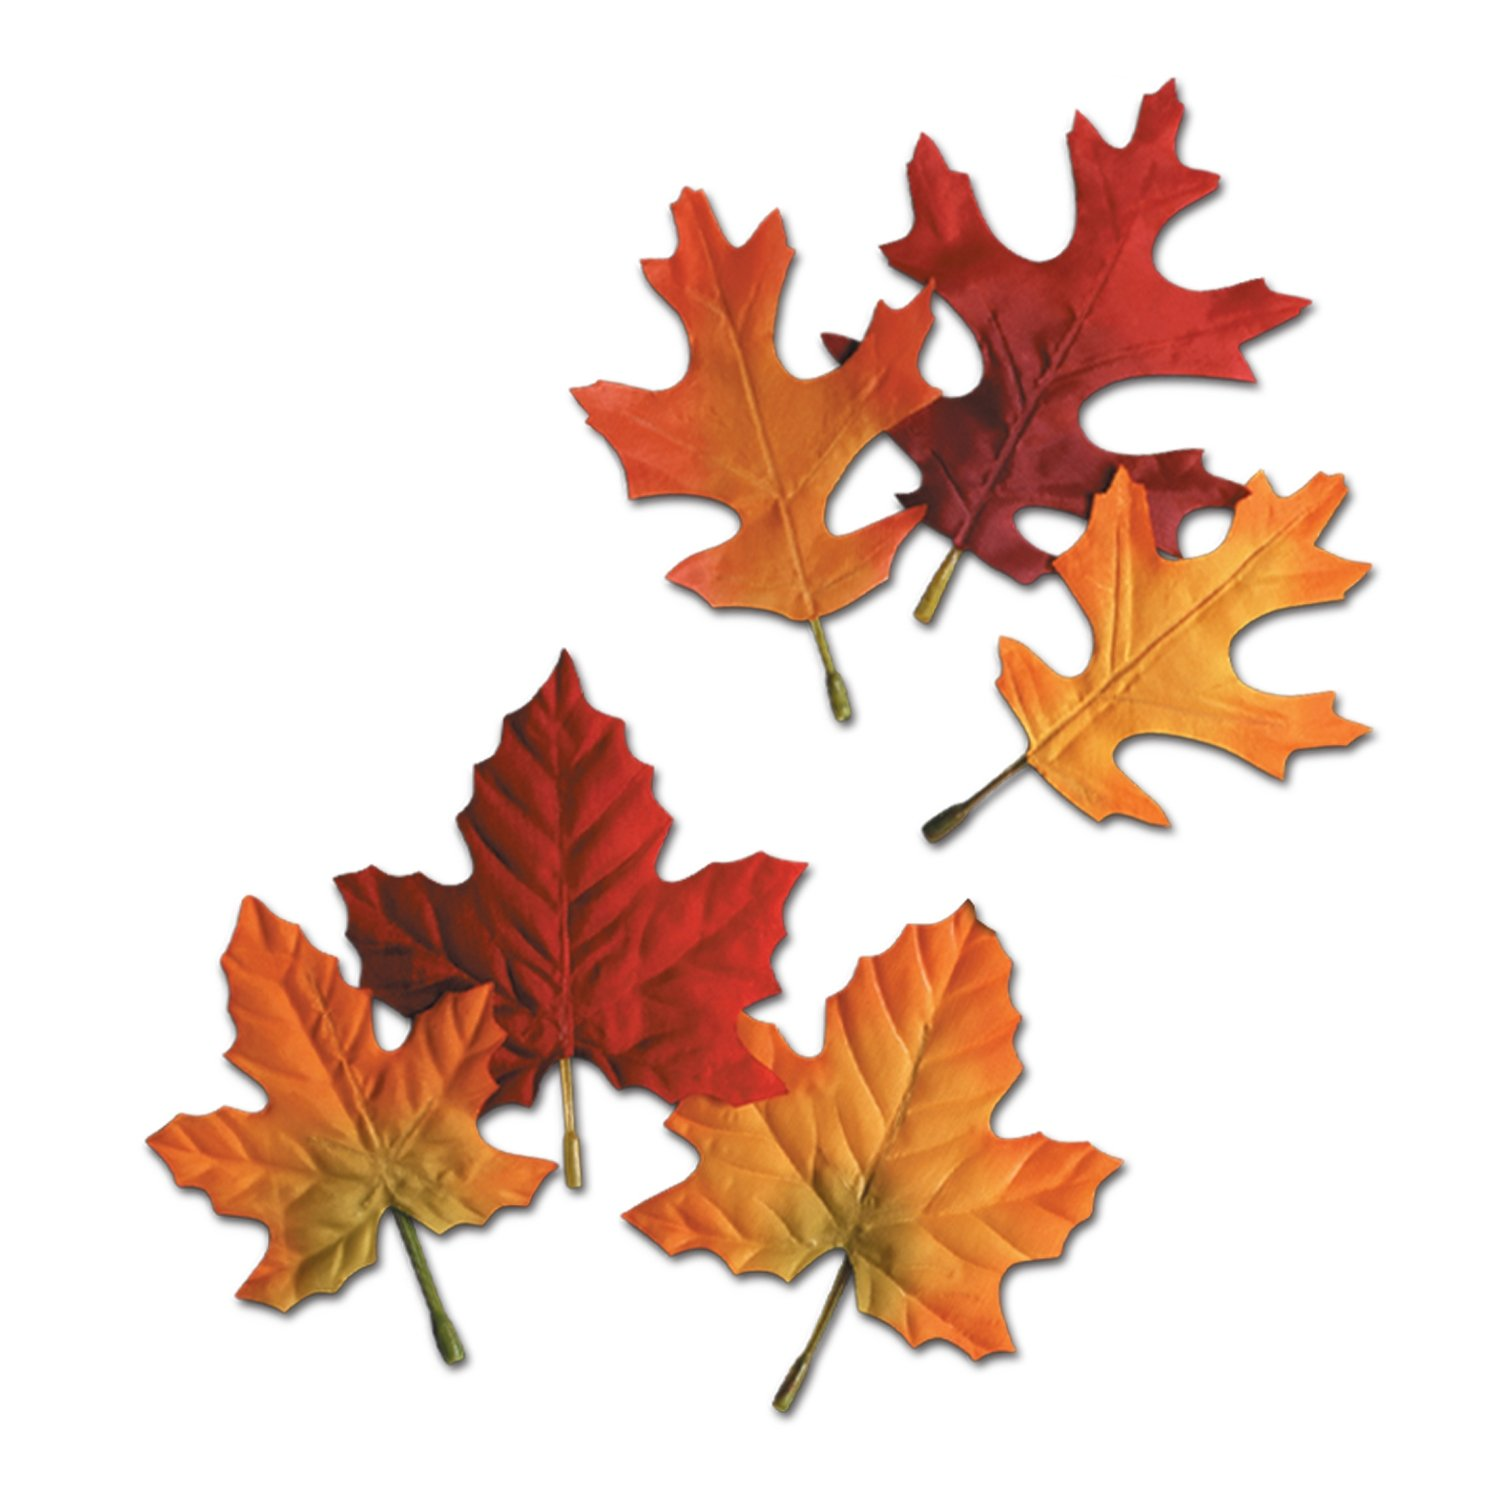 From the book where you might see the beautiful autumn leaves - From The Book Where You Might See The Beautiful Autumn Leaves 39